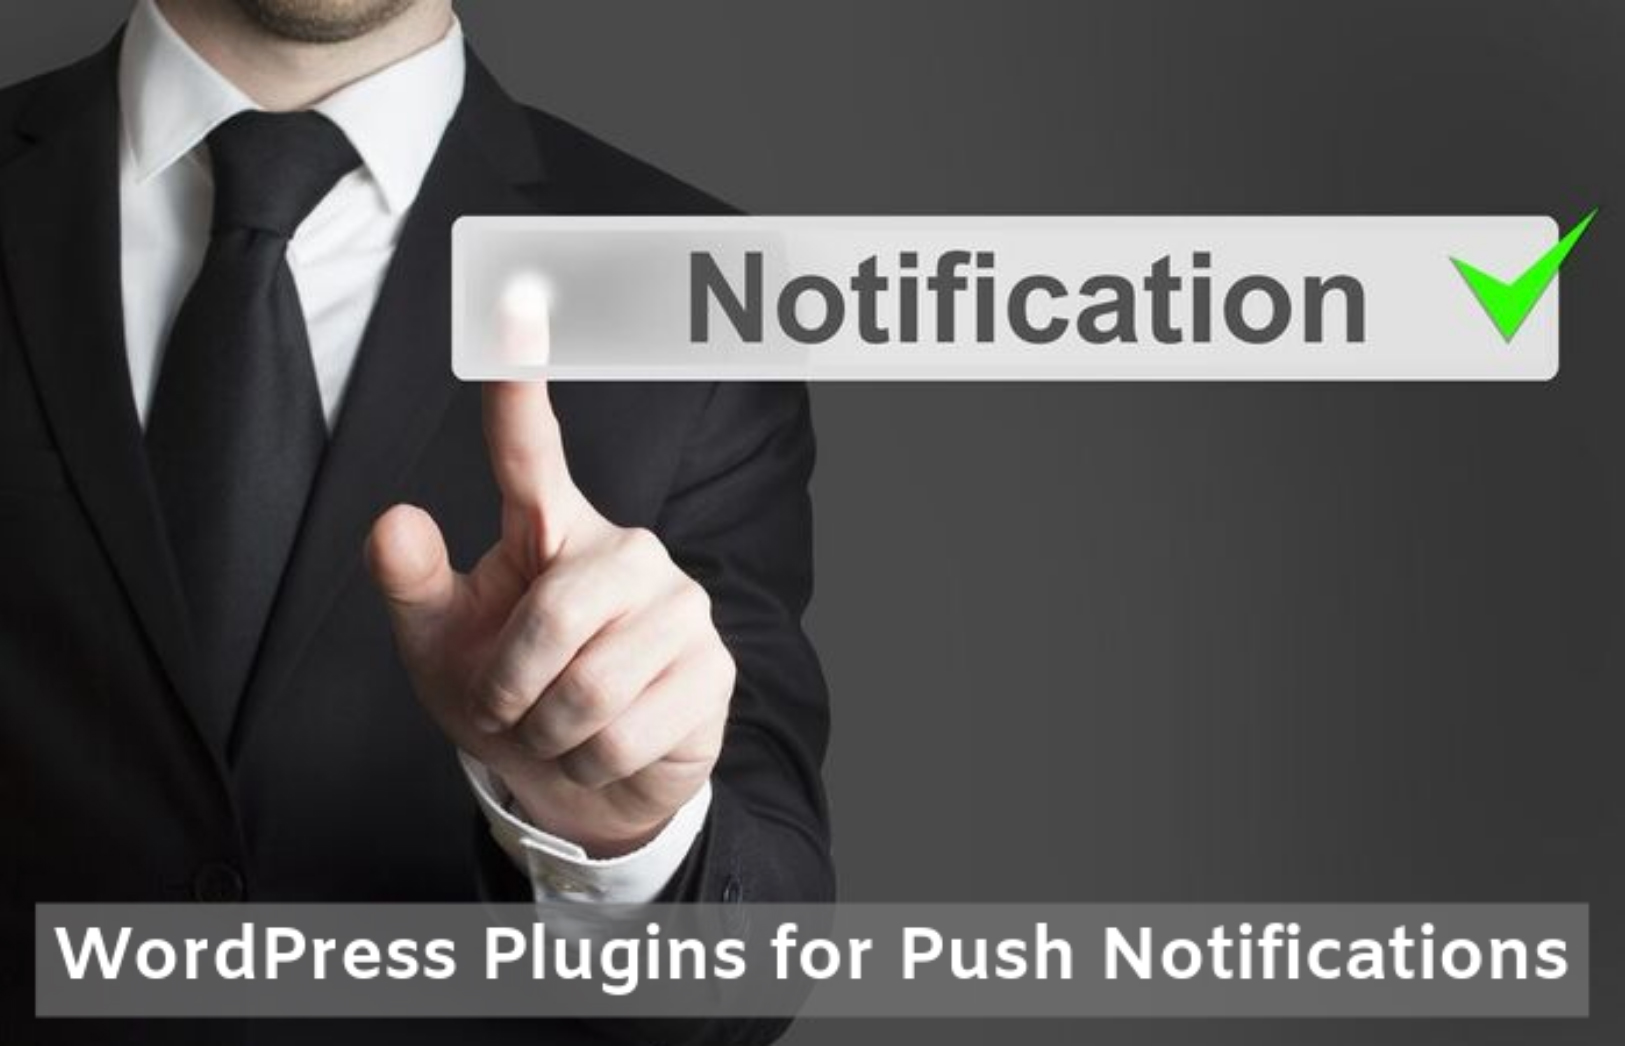 Wordpress plugins for push notifications